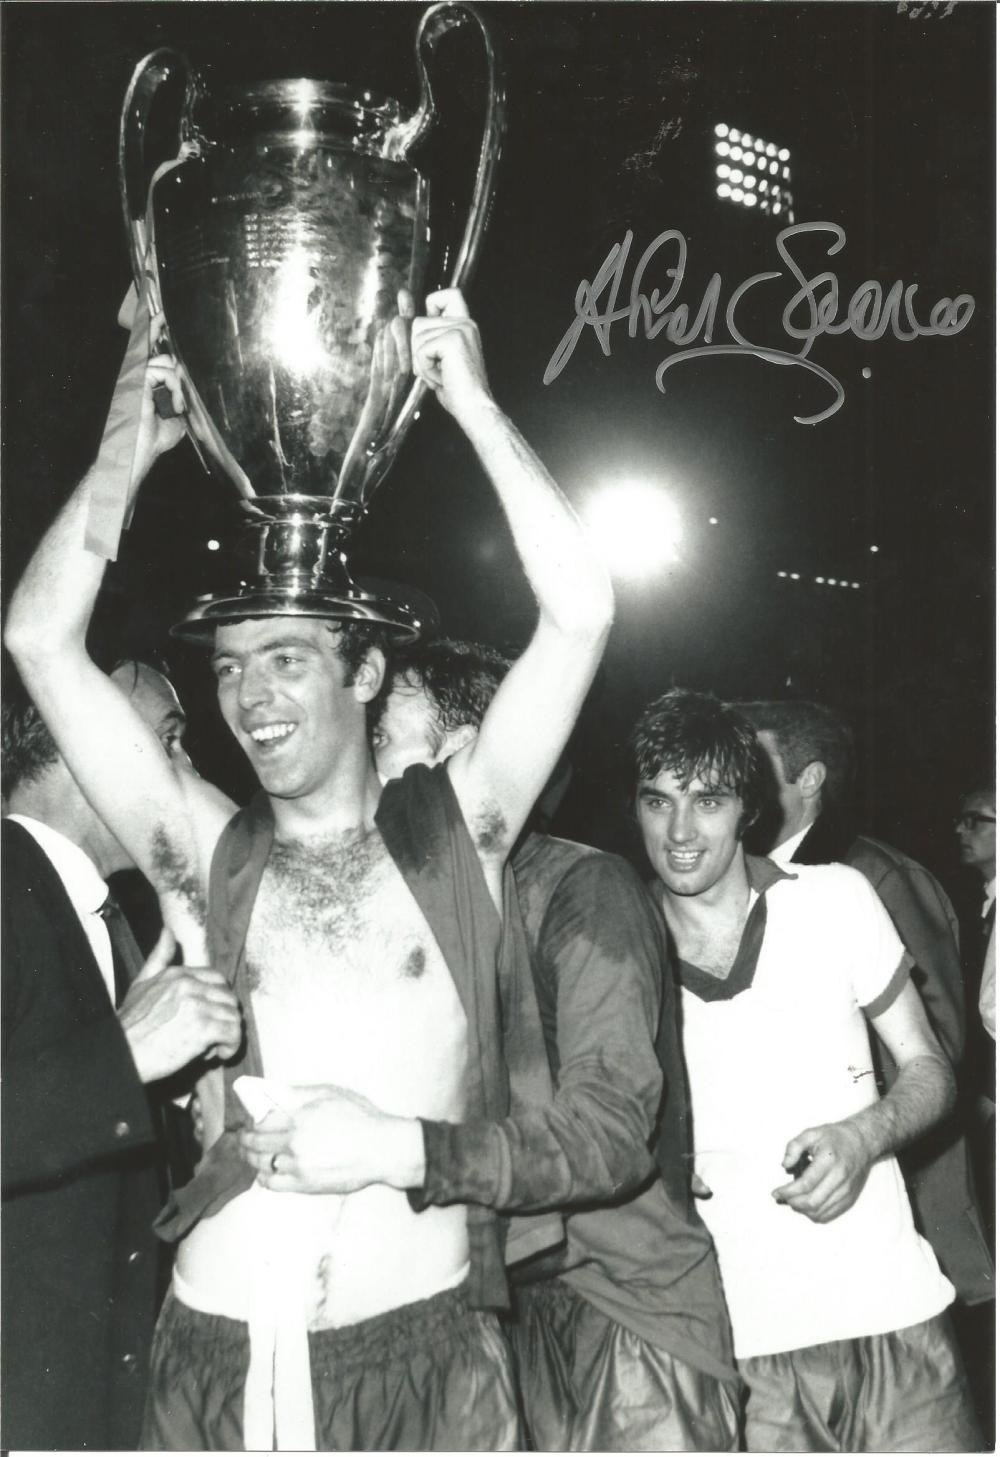 Football David Sadler 12x8 signed b/w photo pictured celebrating after Manchester Uniteds win in the